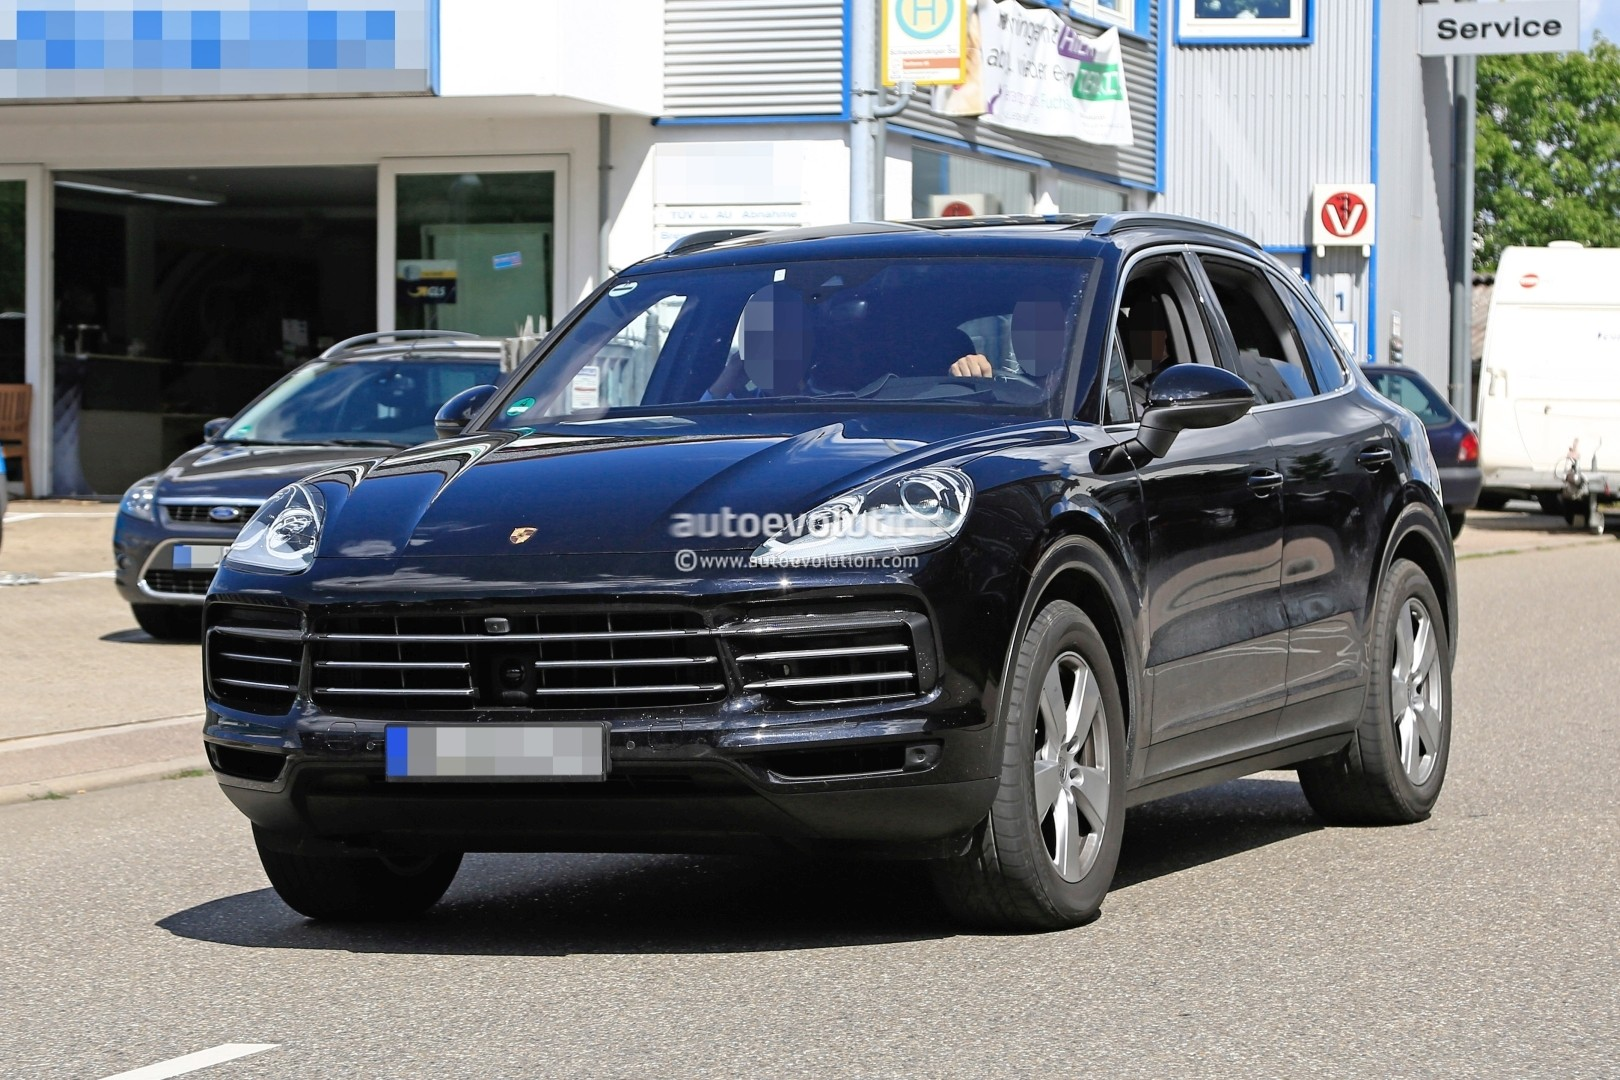 2018 porsche cayenne prototype suggests full width taillights reveals grille autoevolution. Black Bedroom Furniture Sets. Home Design Ideas